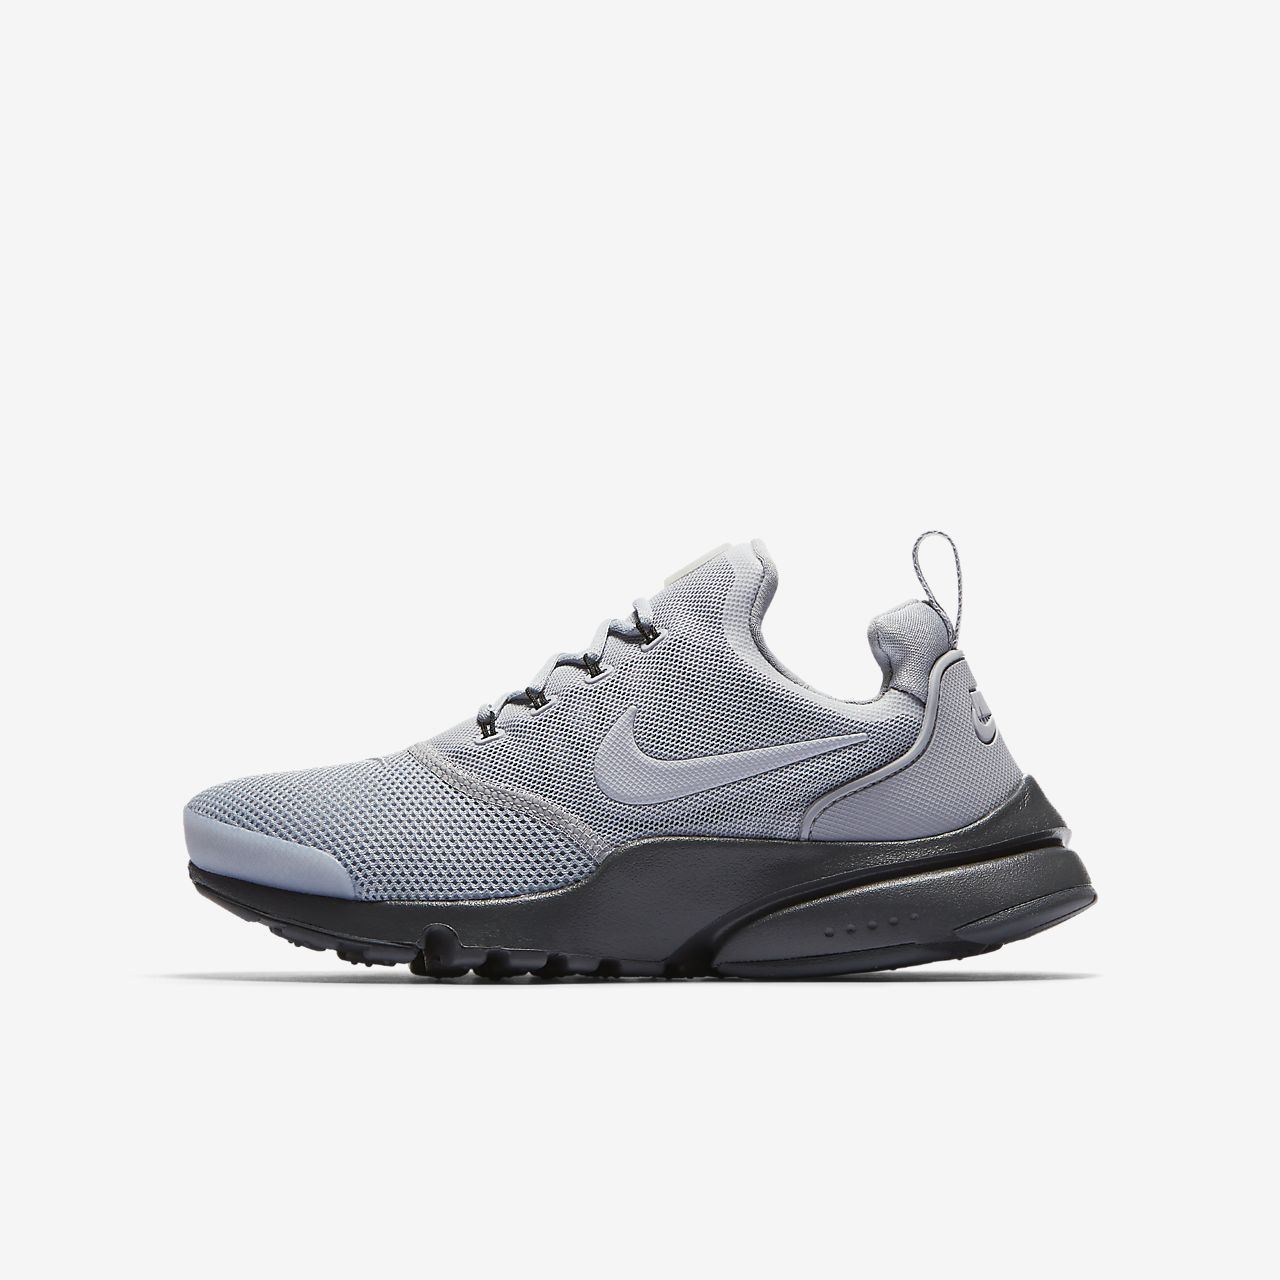 ... Nike Presto Fly Older Kids' Shoe